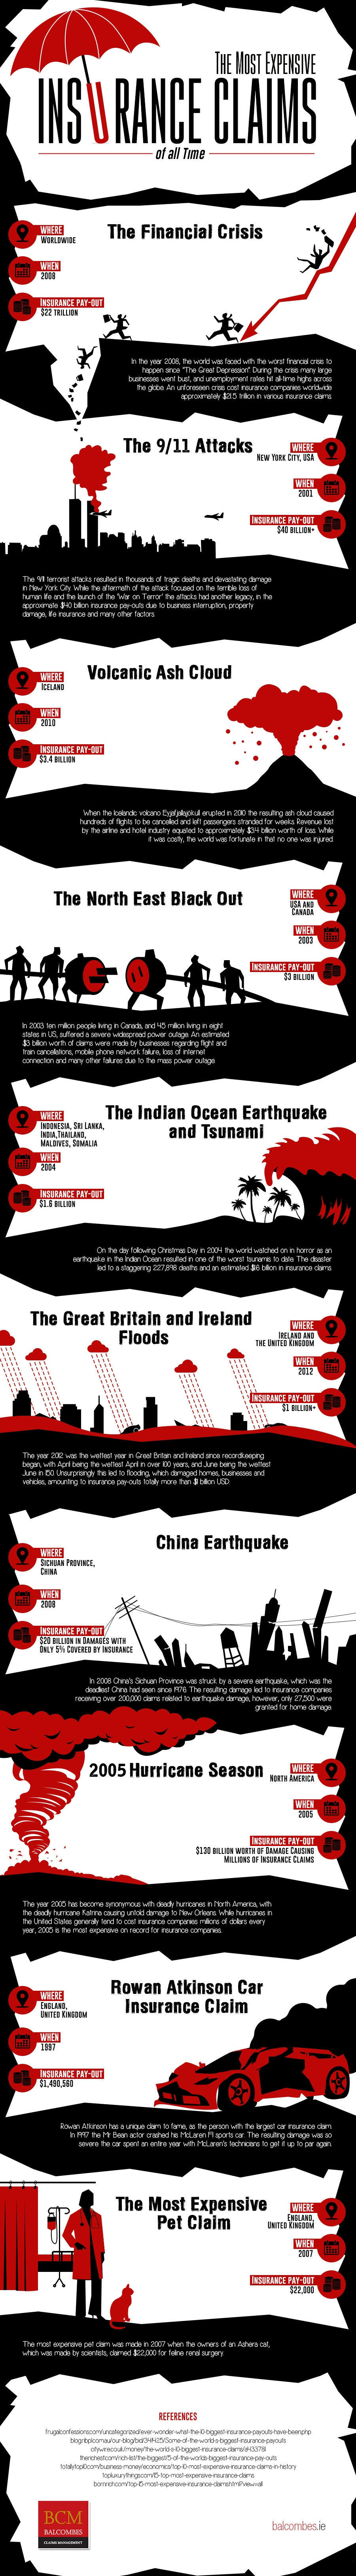 Balcombes - Largest Insurance Payouts - Infographic